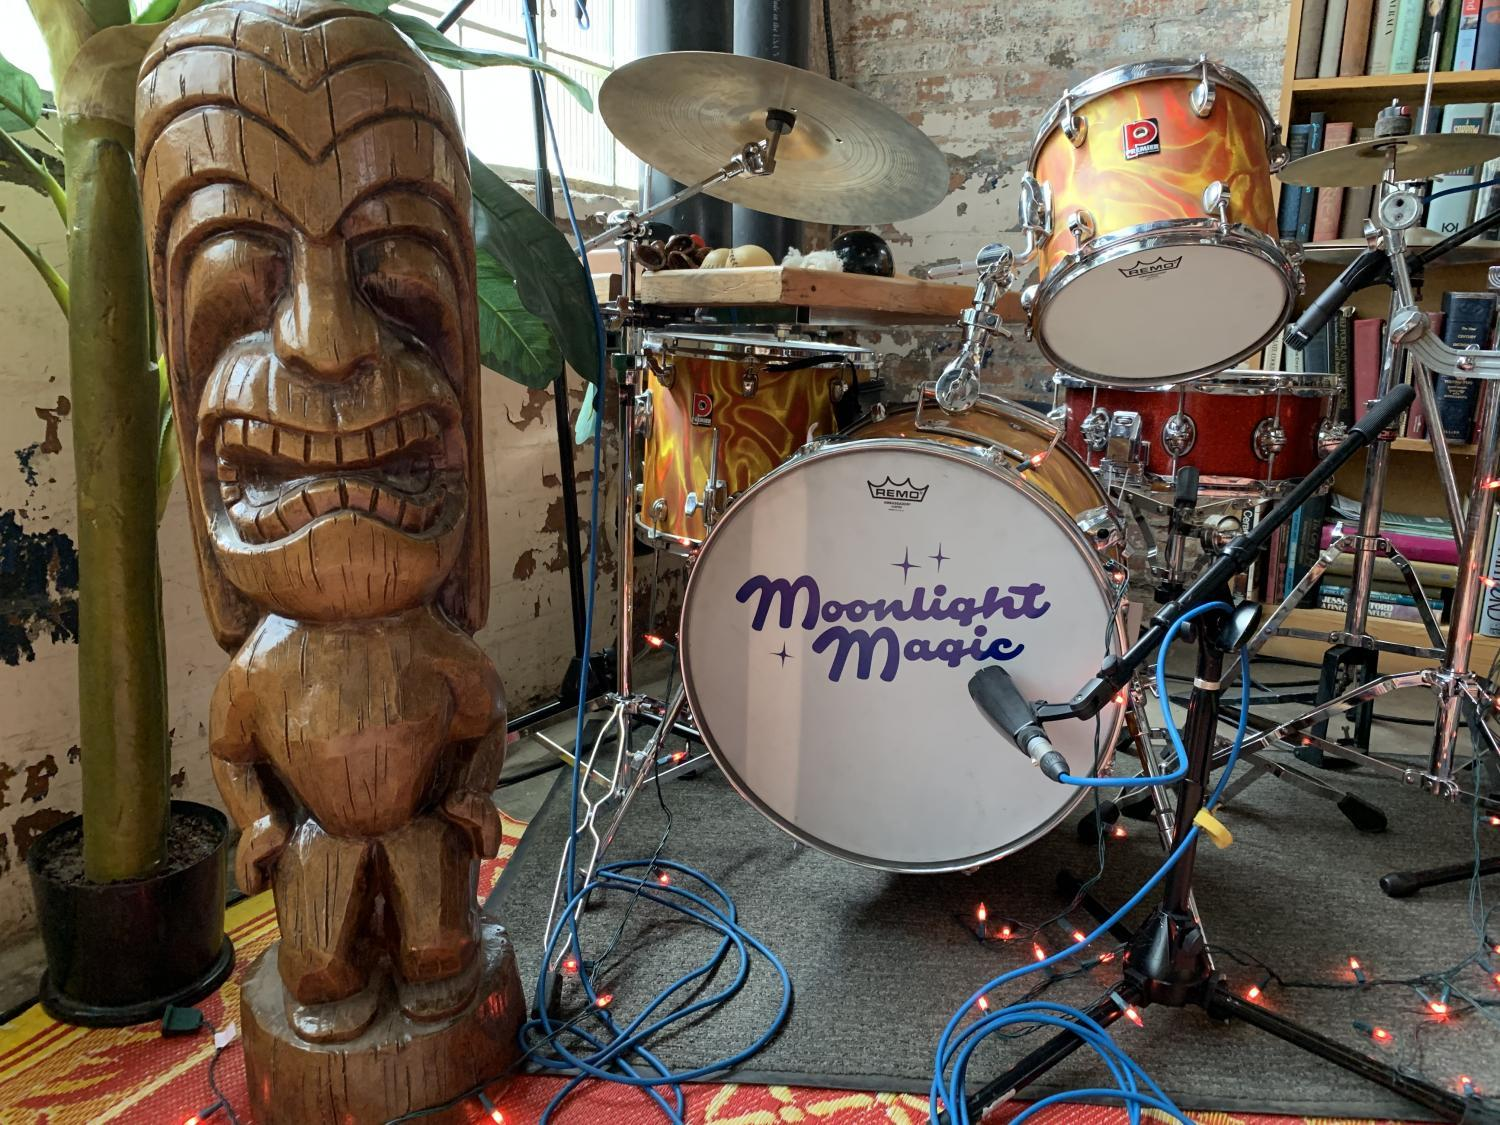 Moonlight Magic props and drum set